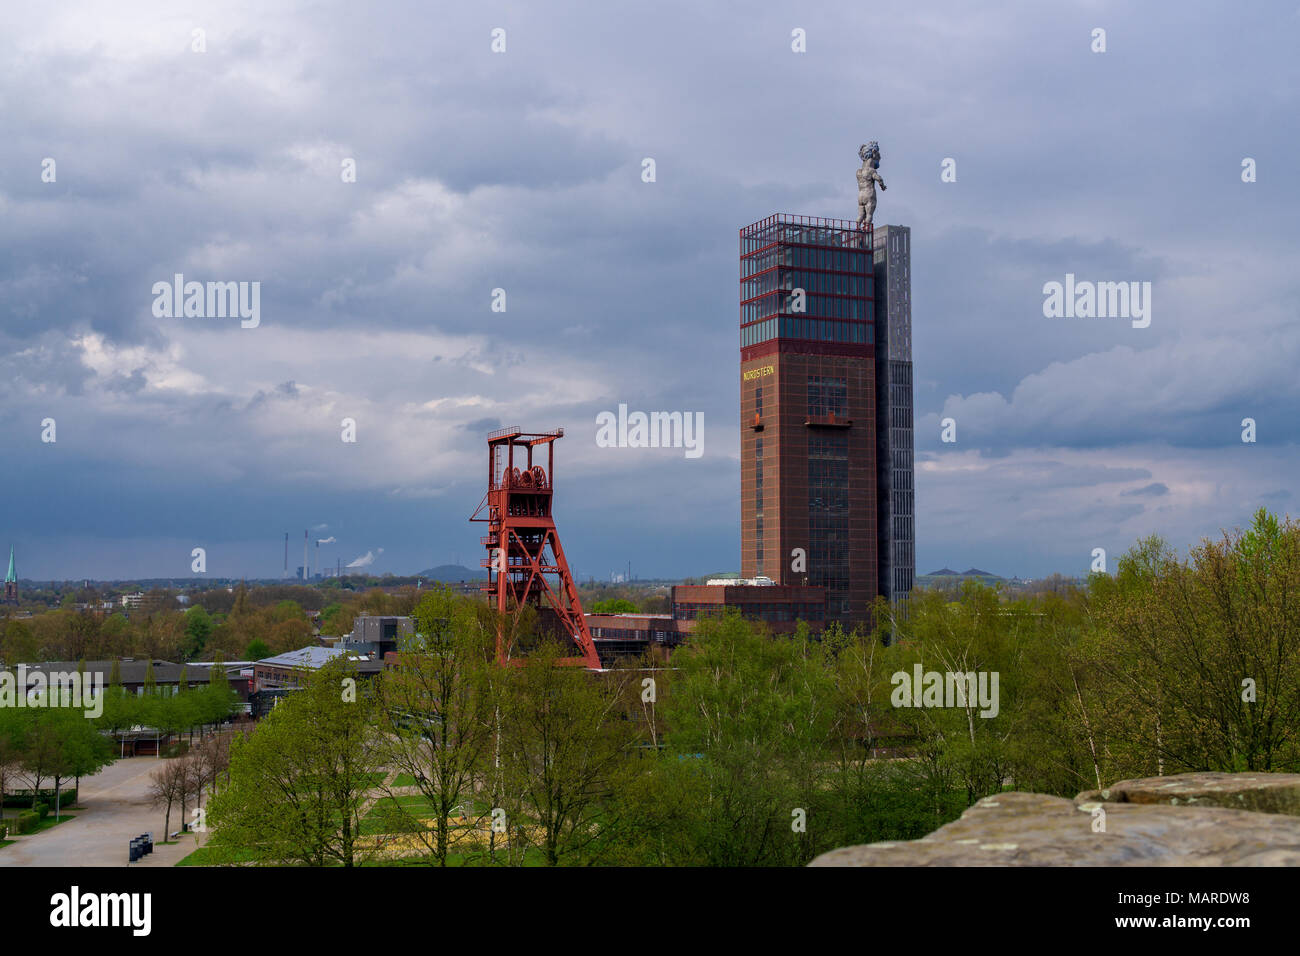 Coal mine Nordstern in Gelsenkirchen ruhr area germany - Stock Image